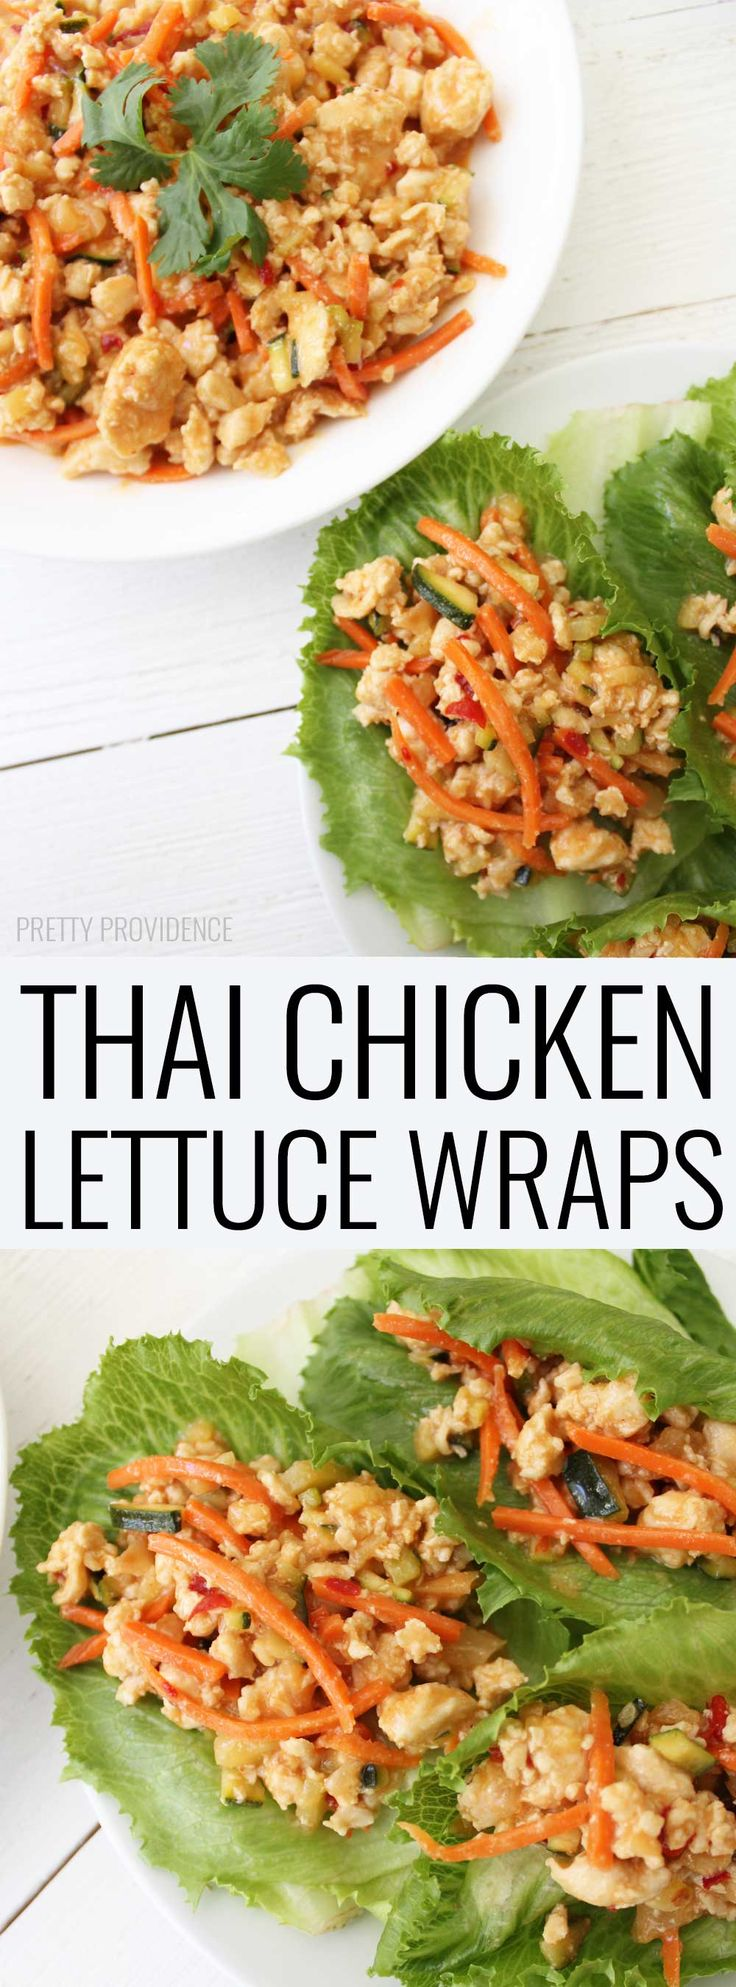 Thai Chicken Lettuce Wraps! These are super low cal, healthy and SO delicious! Perfect for busy nights or meal prepping for lunches throughout the week!